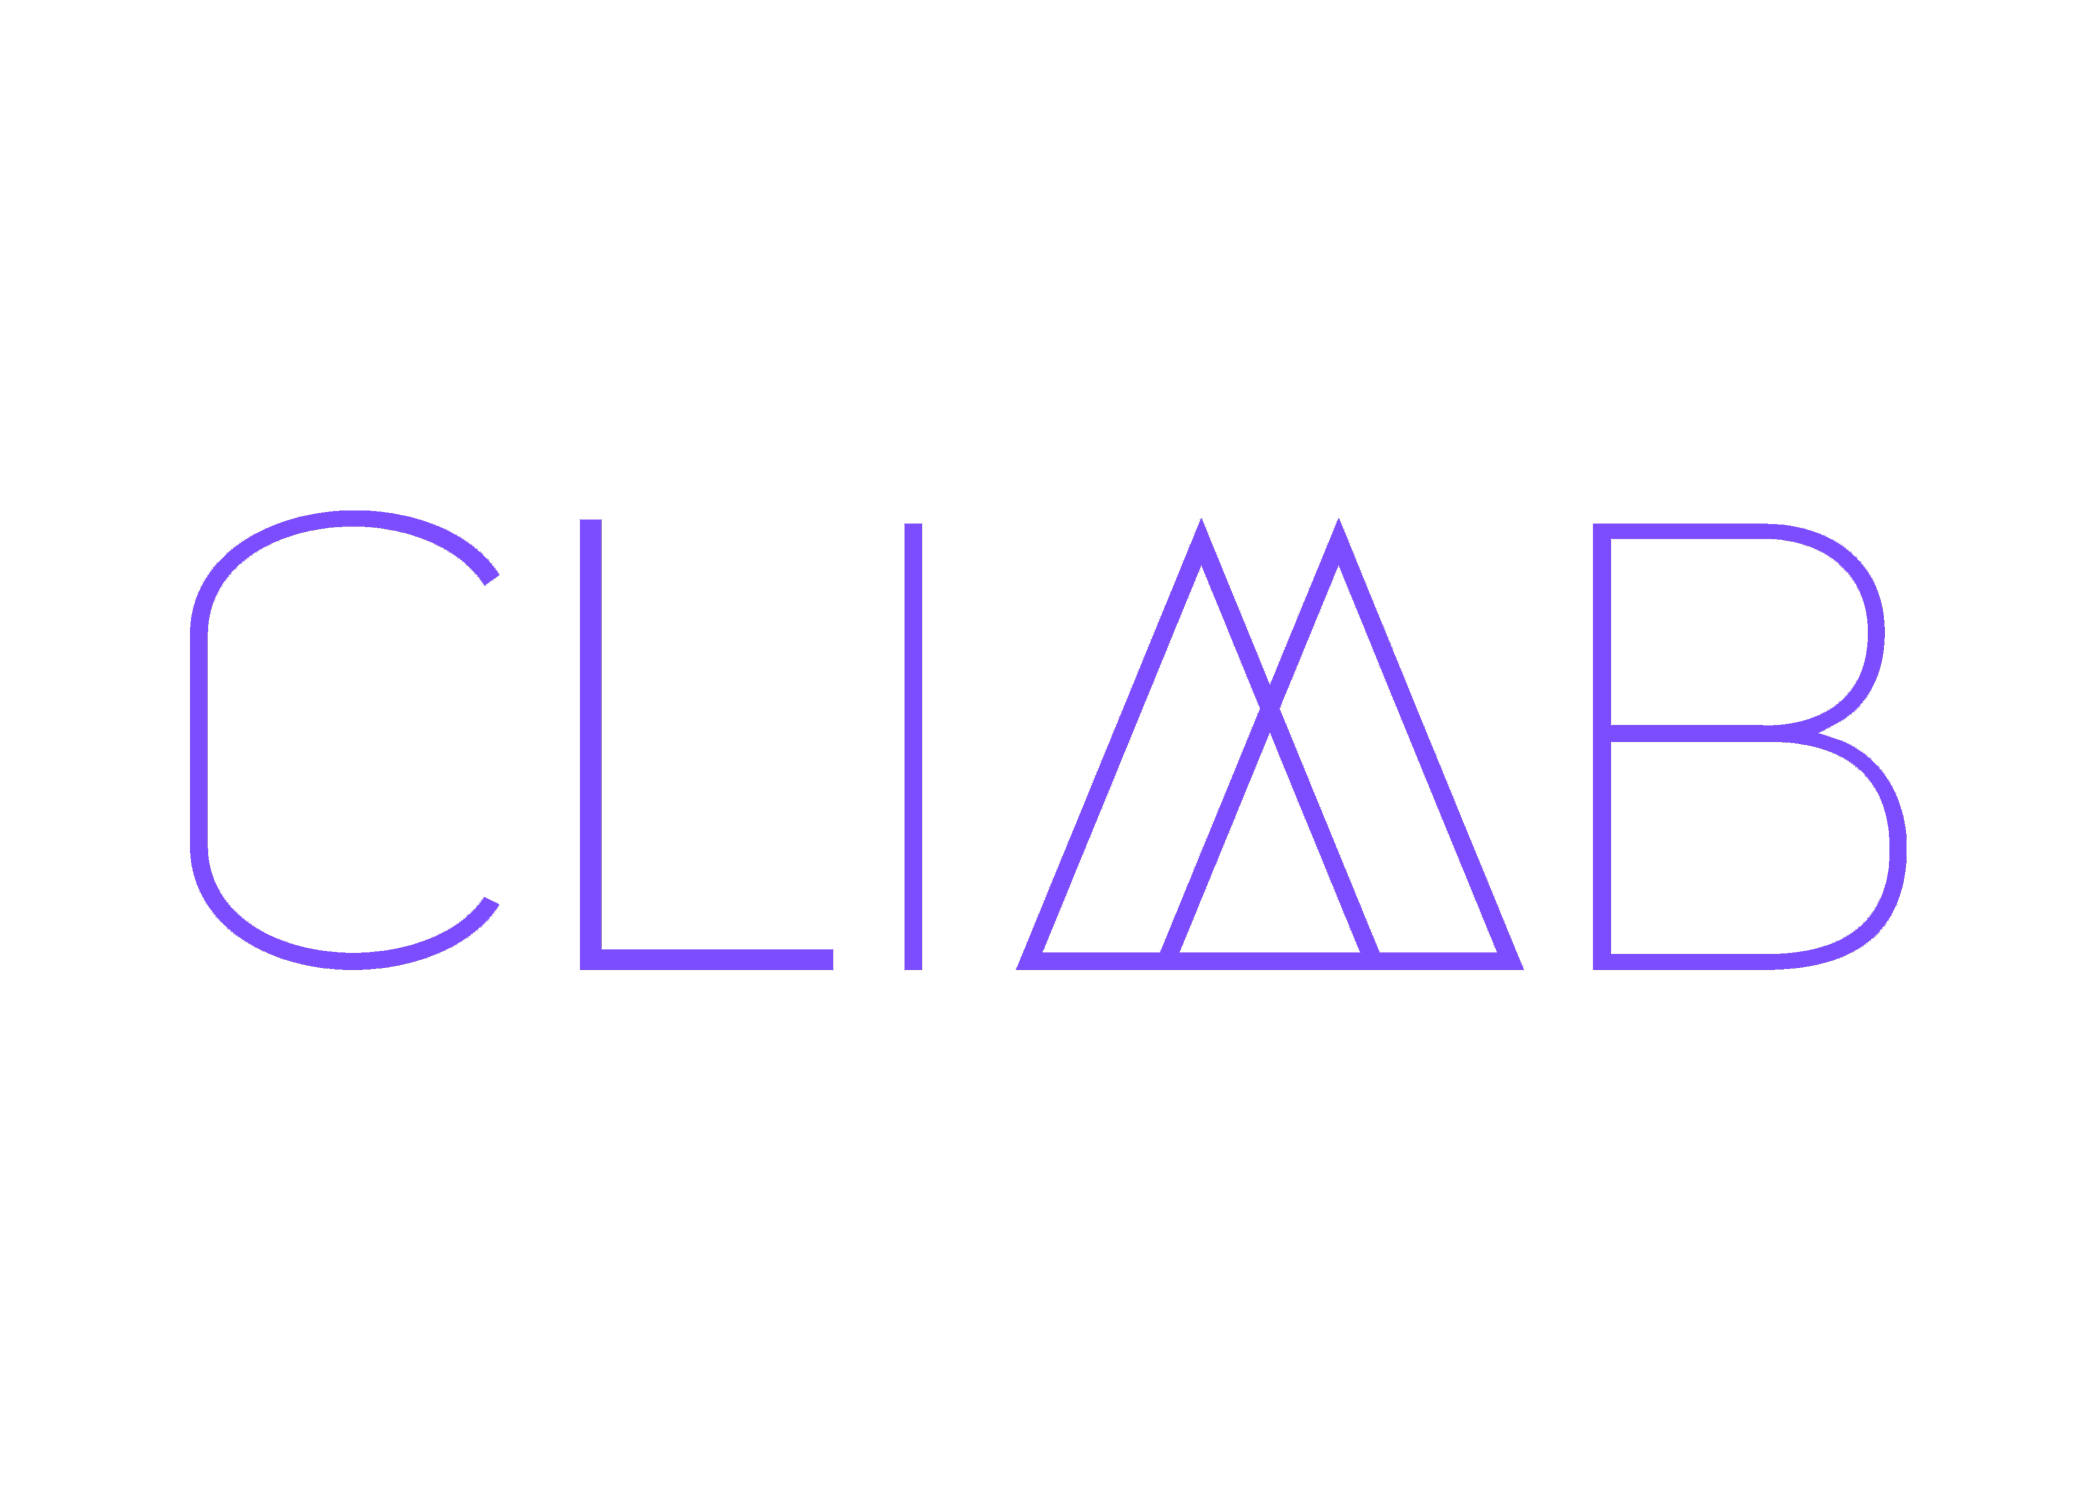 Climb Credit   is a financial technology company that offers an alternative approach to financing affordable and compelling career-skill programs, ultimately leading to higher paying jobs.